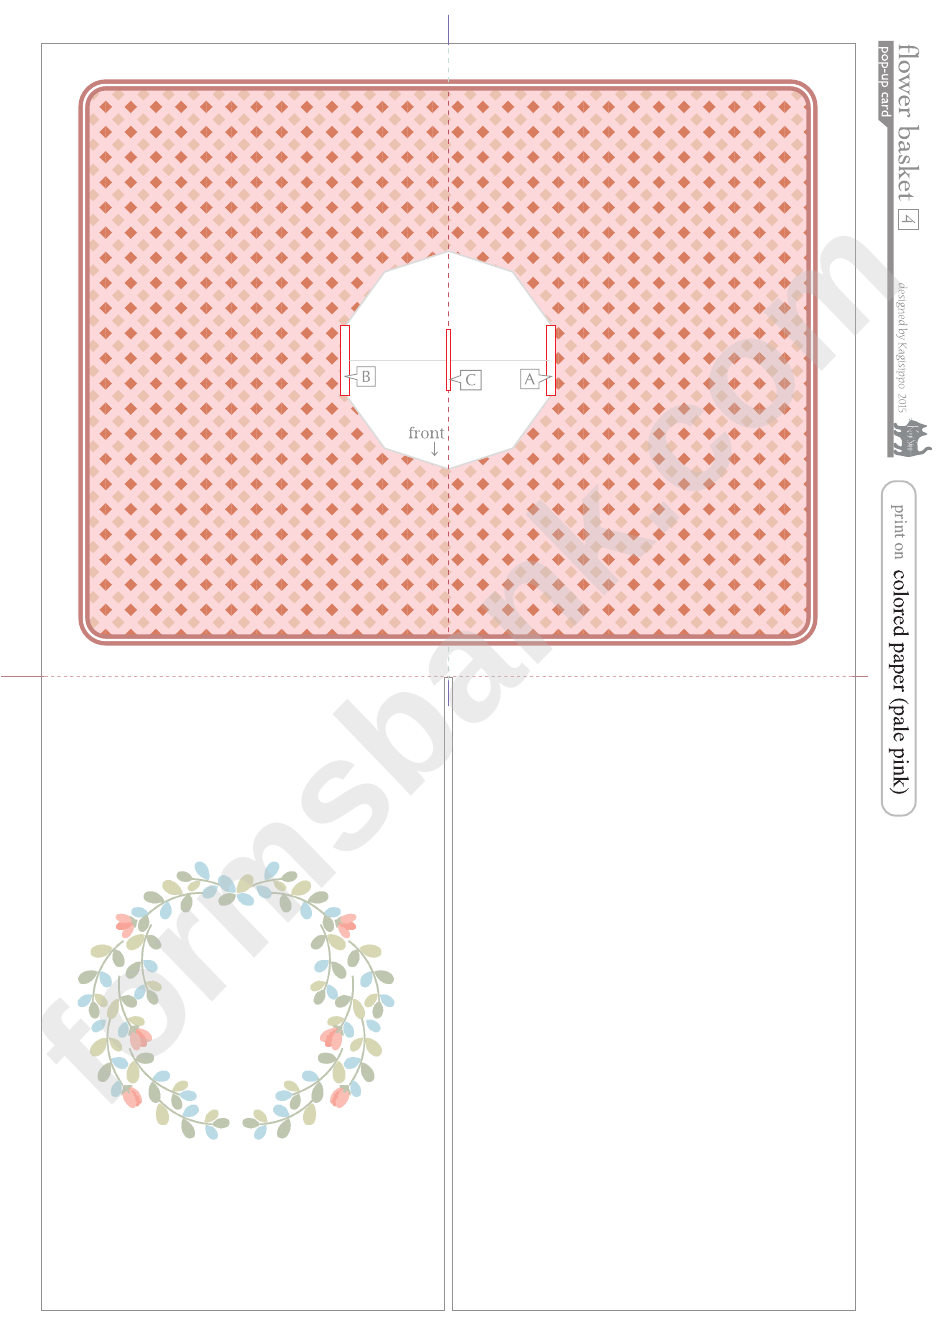 Flower Basket Pop Up Card Template Page 4 Of 4 In Pdf In 2021 Pop Up Card Templates Flower Basket Card Template